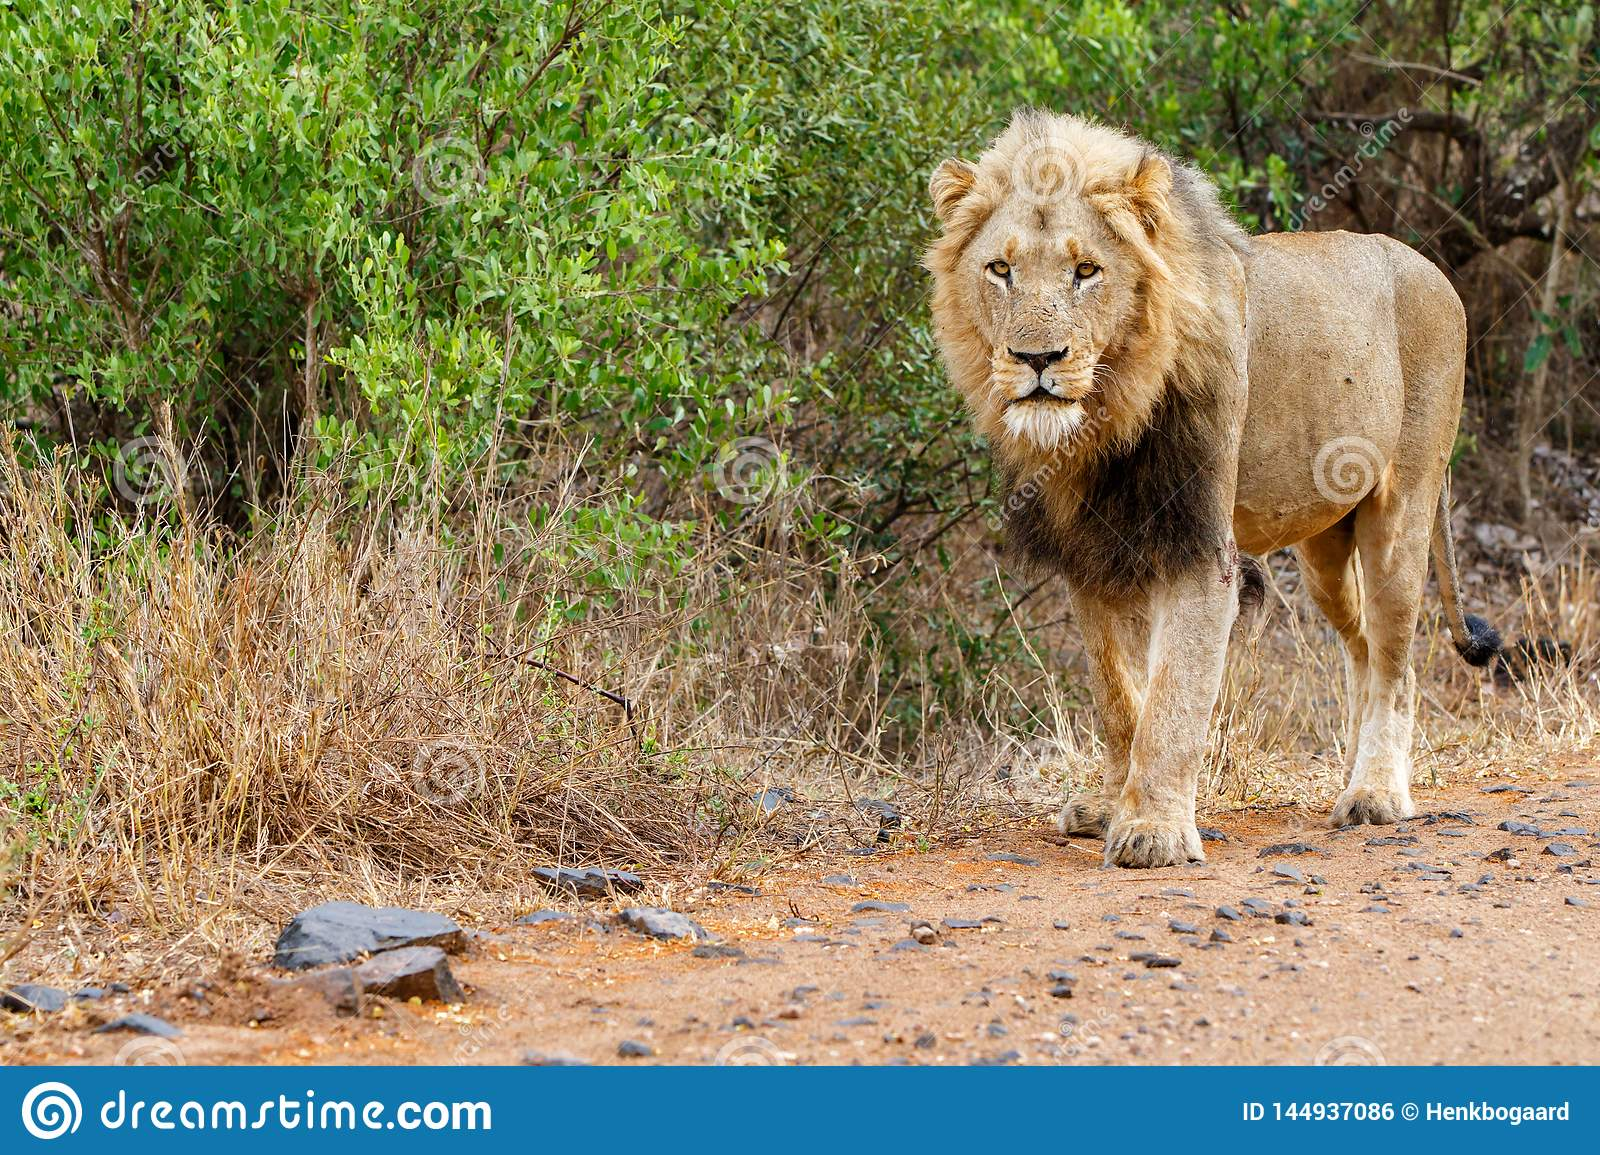 Male lion in Kruger NP - South Africa